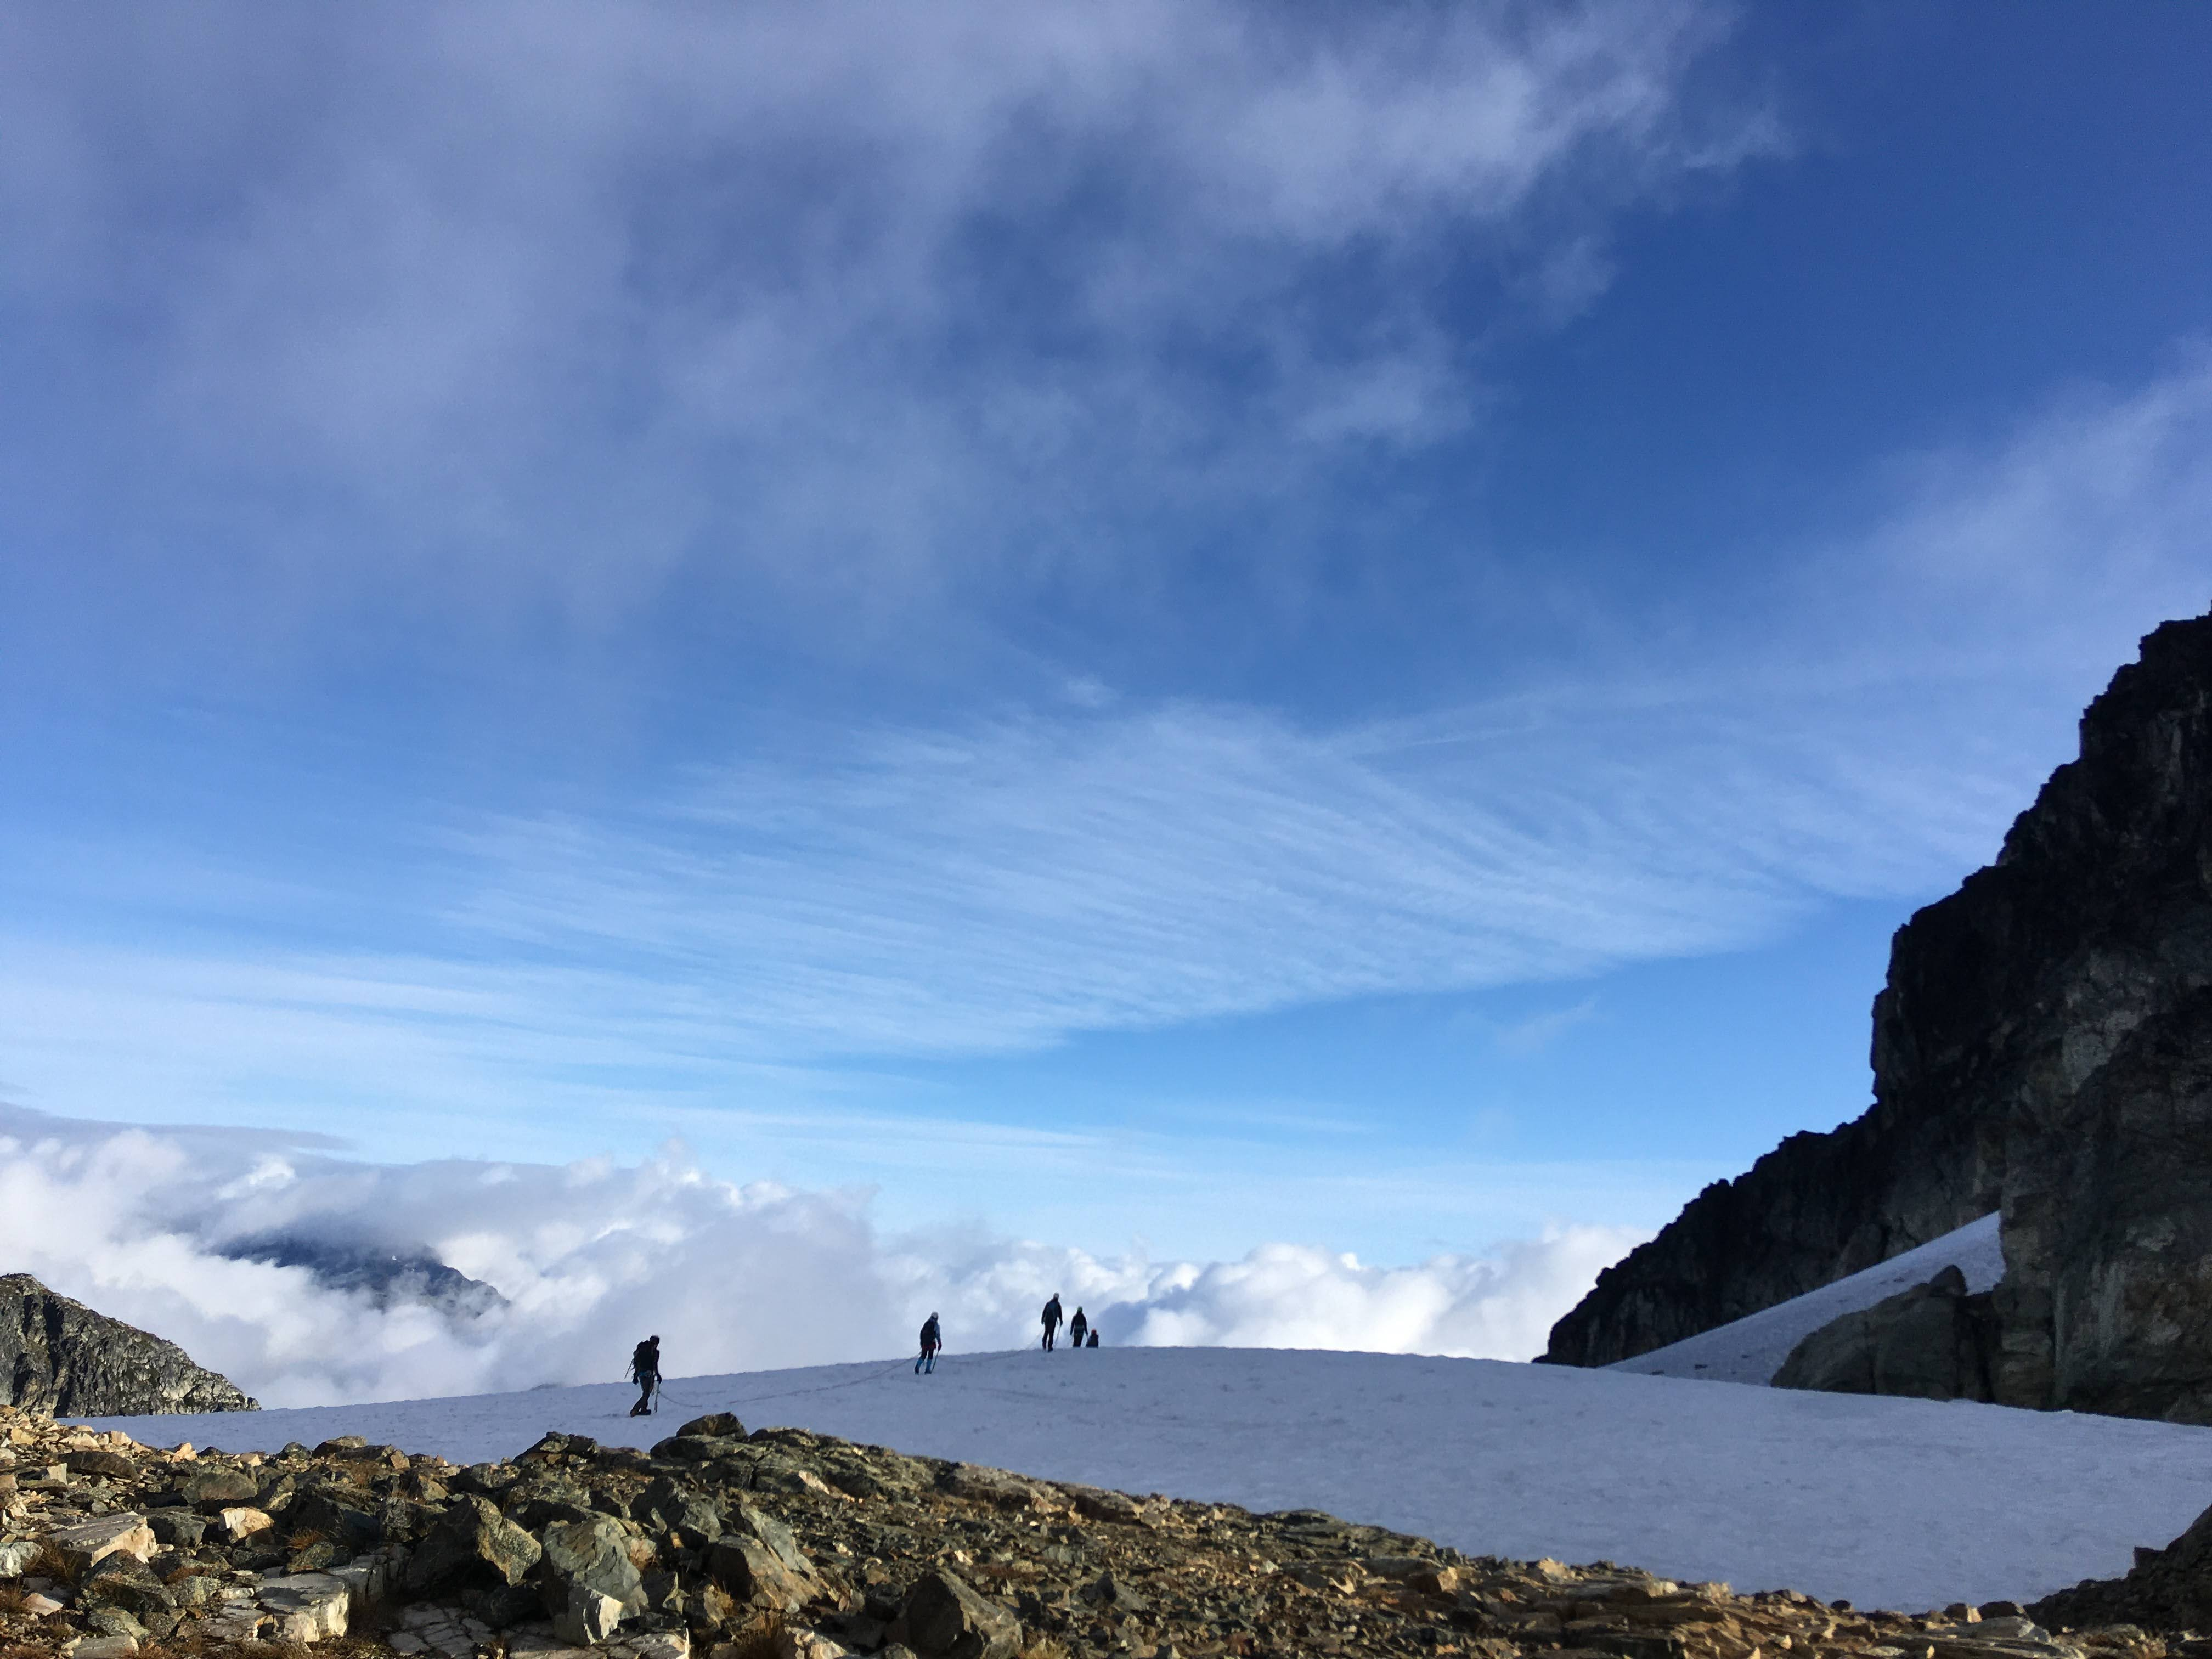 Kai's group walking into the clouds on the NE glacier. Photo by Melissa Bernstein